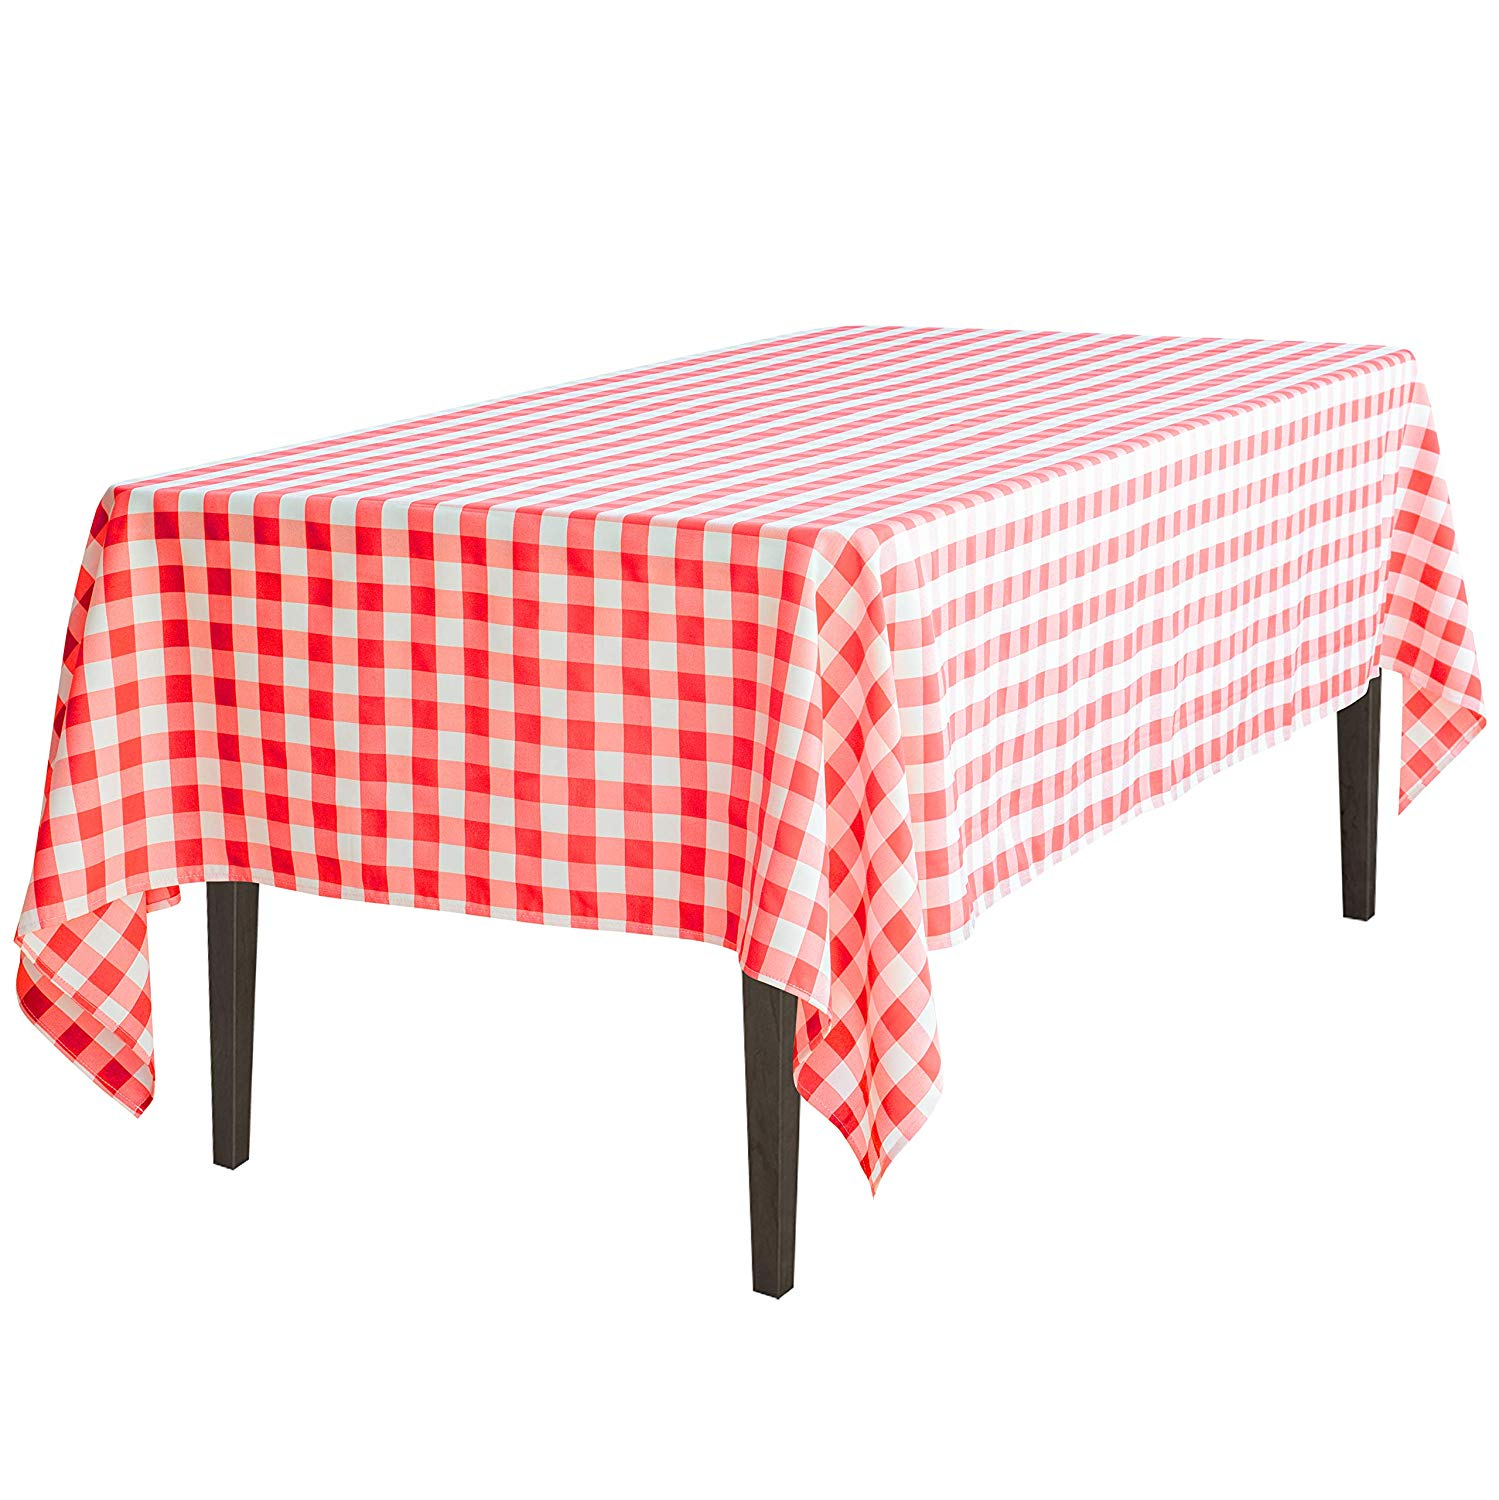 linentablecloth inch rectangular tablecloth red for round accent table white checker home kitchen fall runner patterns modern glass end tables target vases folding lawn chairs